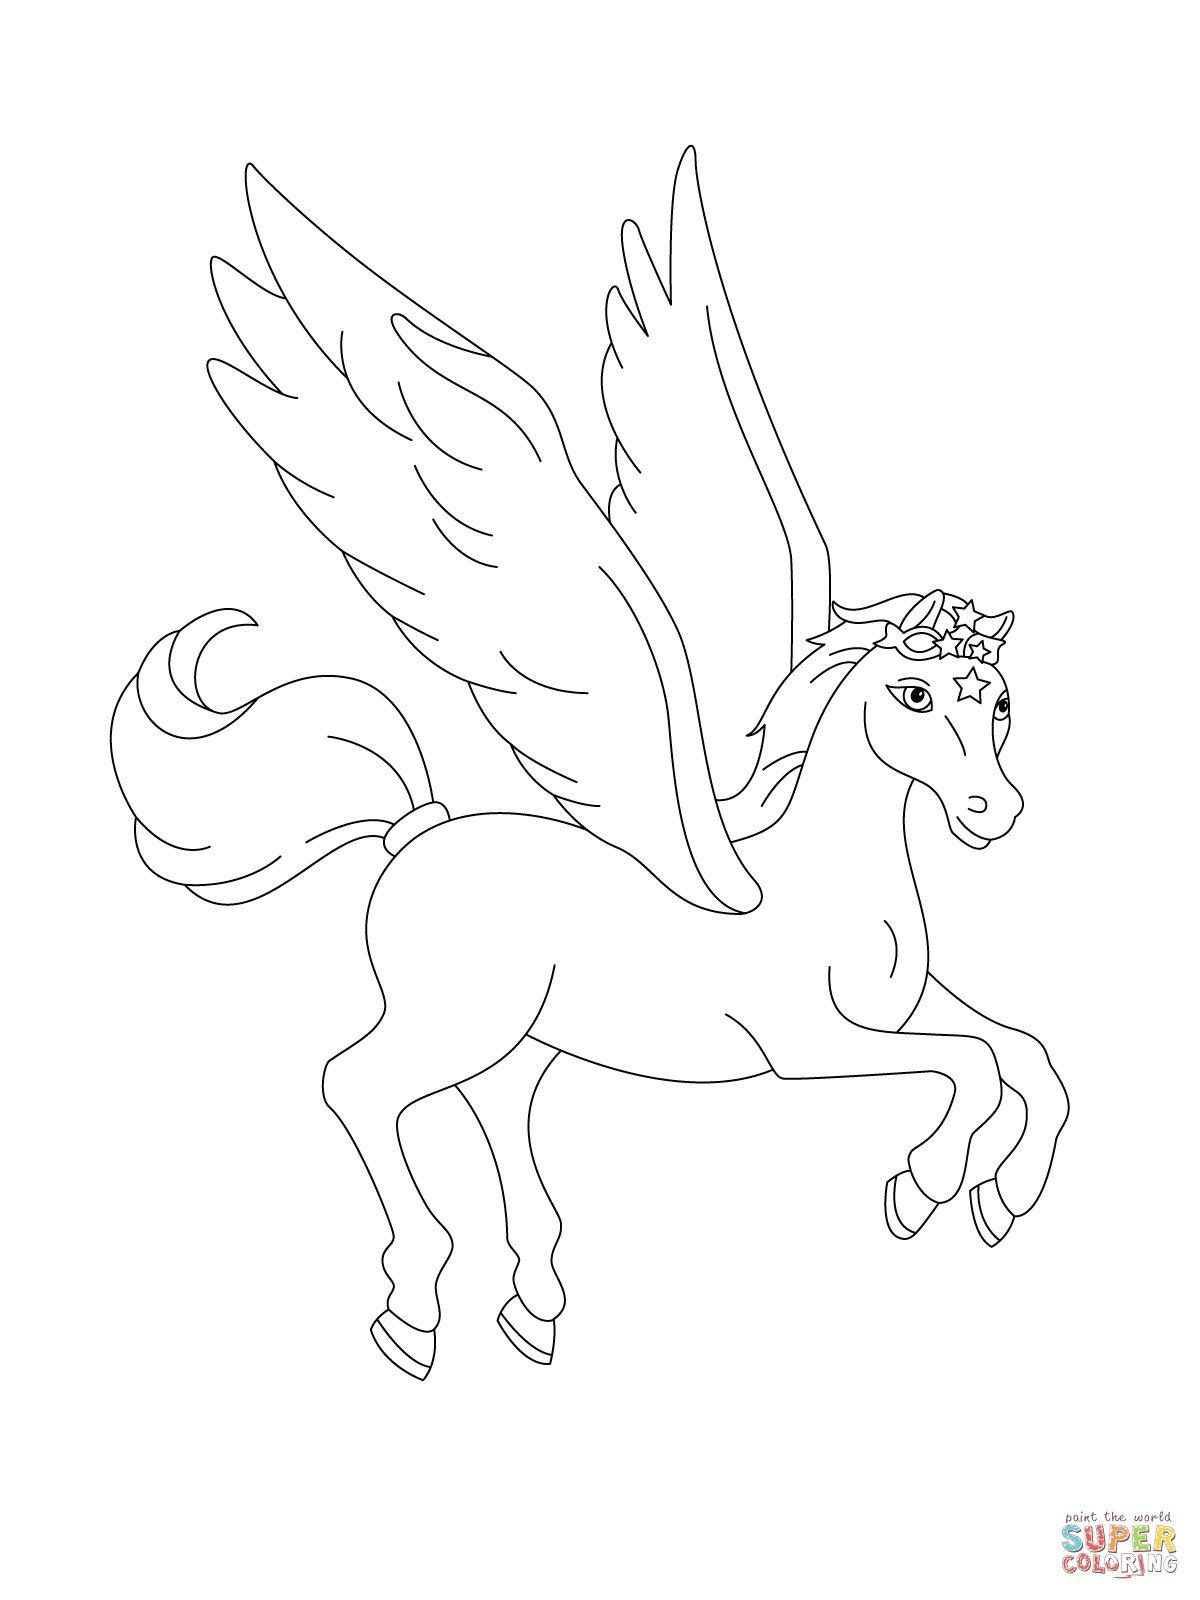 Pegasus Flying Coloring Page Supercoloring Com Unicorn Coloring Pages Coloring Pages Color Worksheets